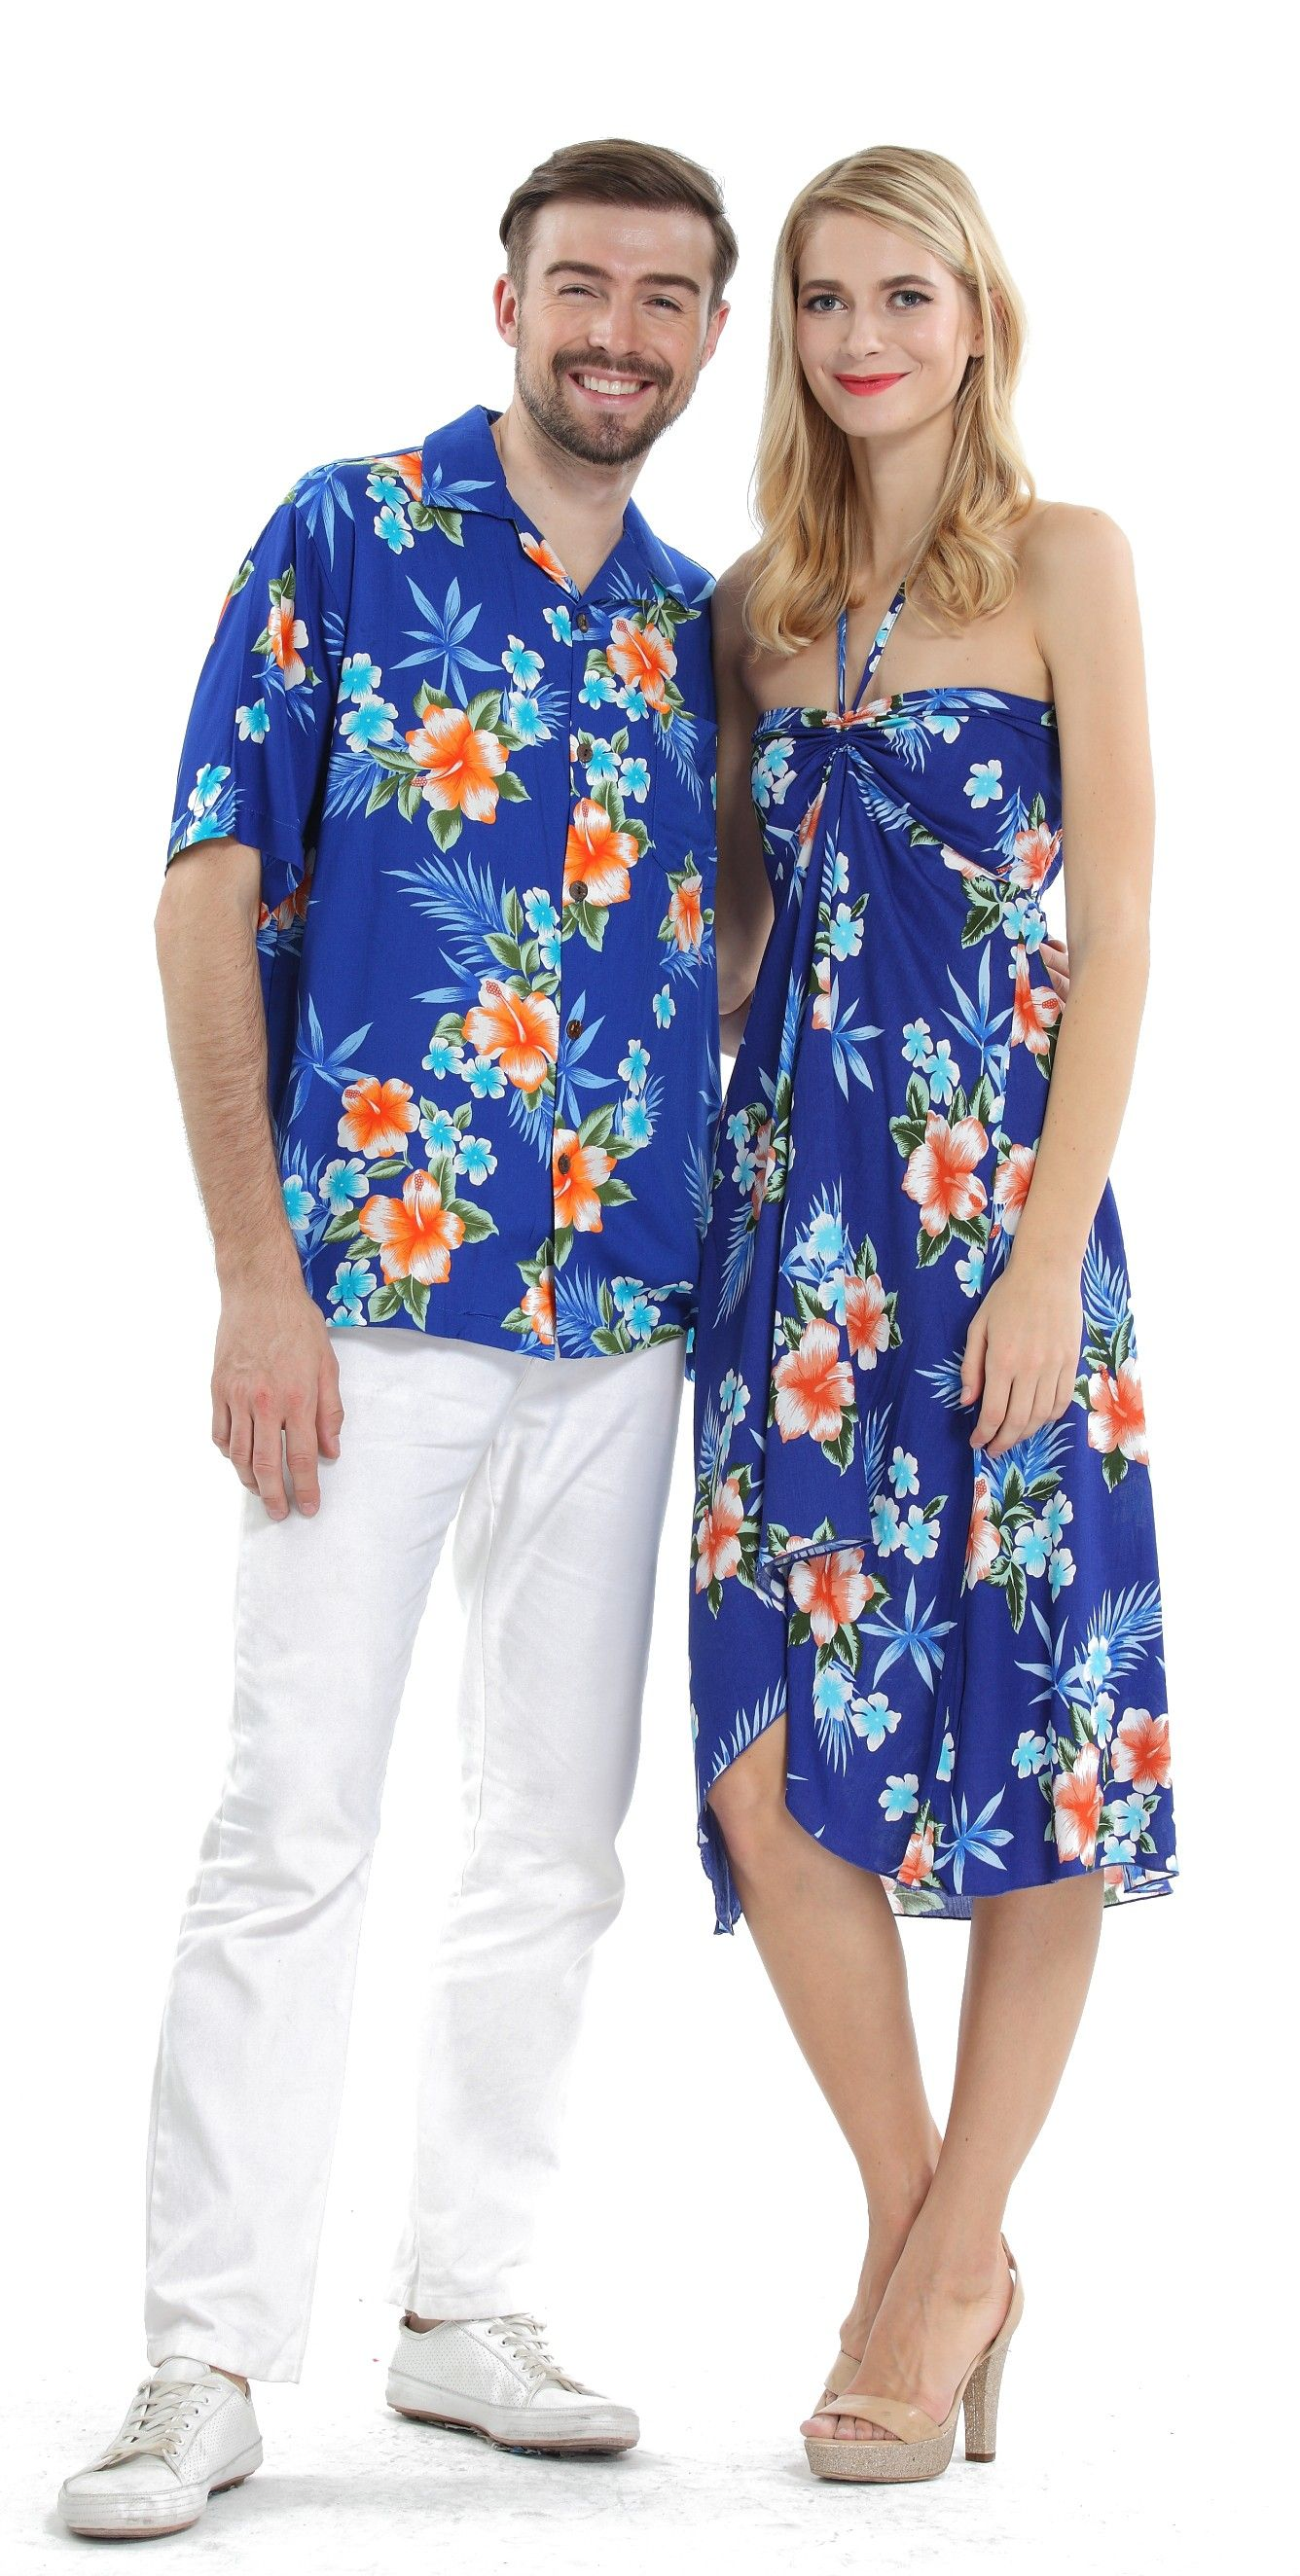 d2ed75b62409 Couple Matching Hawaiian Luau Cruise Party Outfit Shirt Dress in Hibiscus  Blue